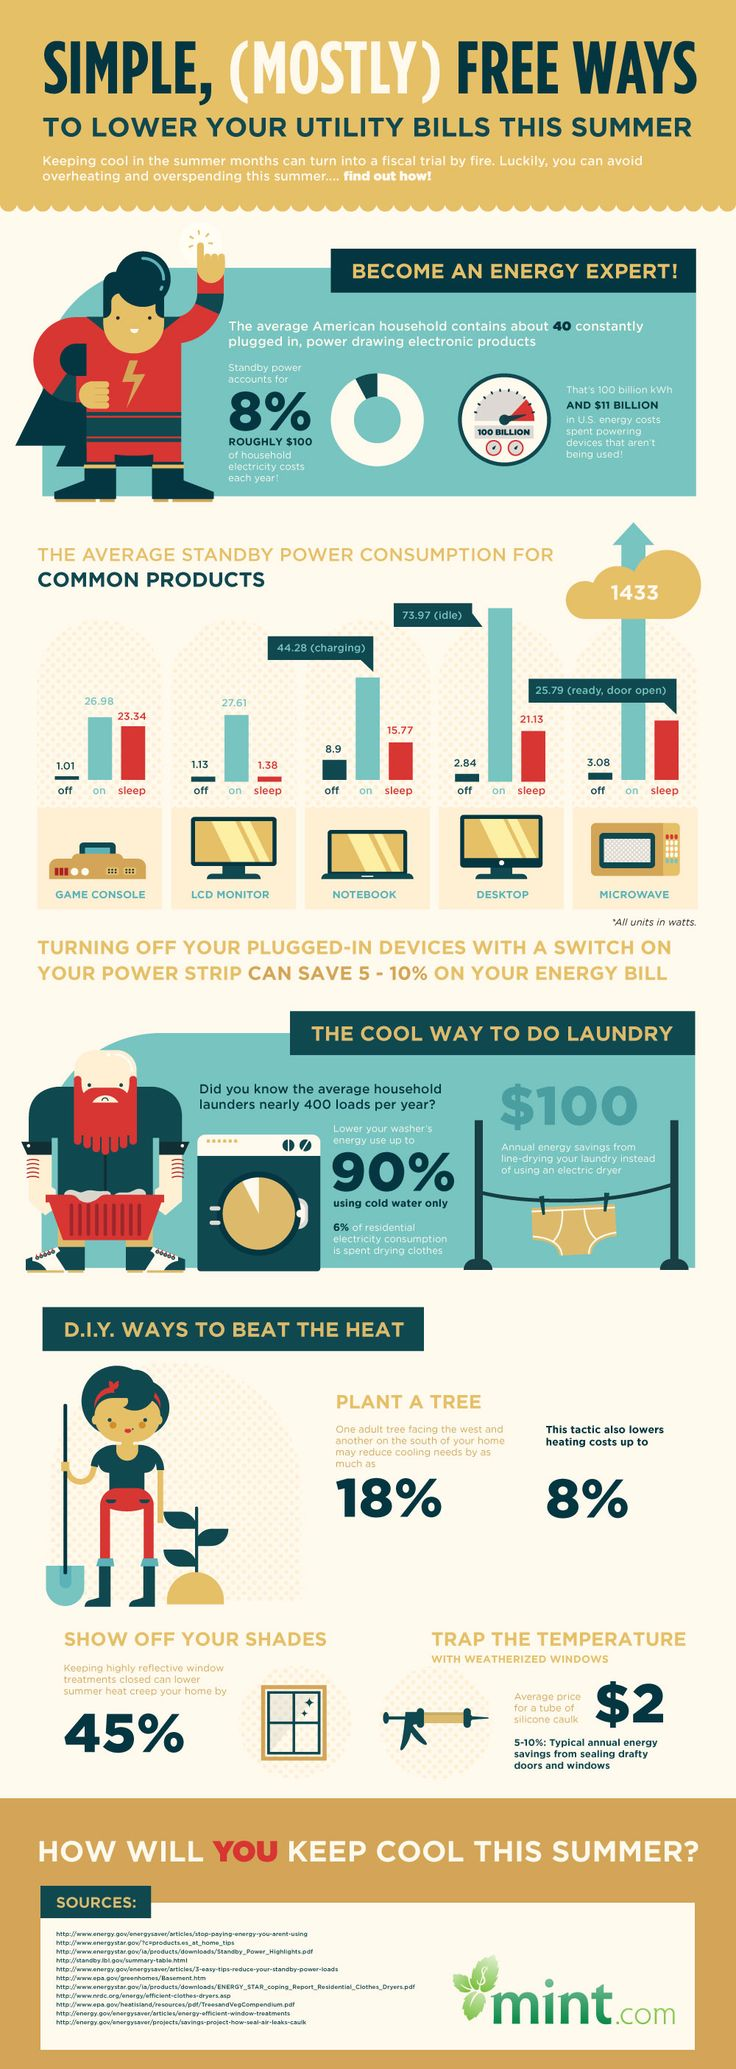 Here's a fun infographic with simple tips to save money on utility bills this summer.